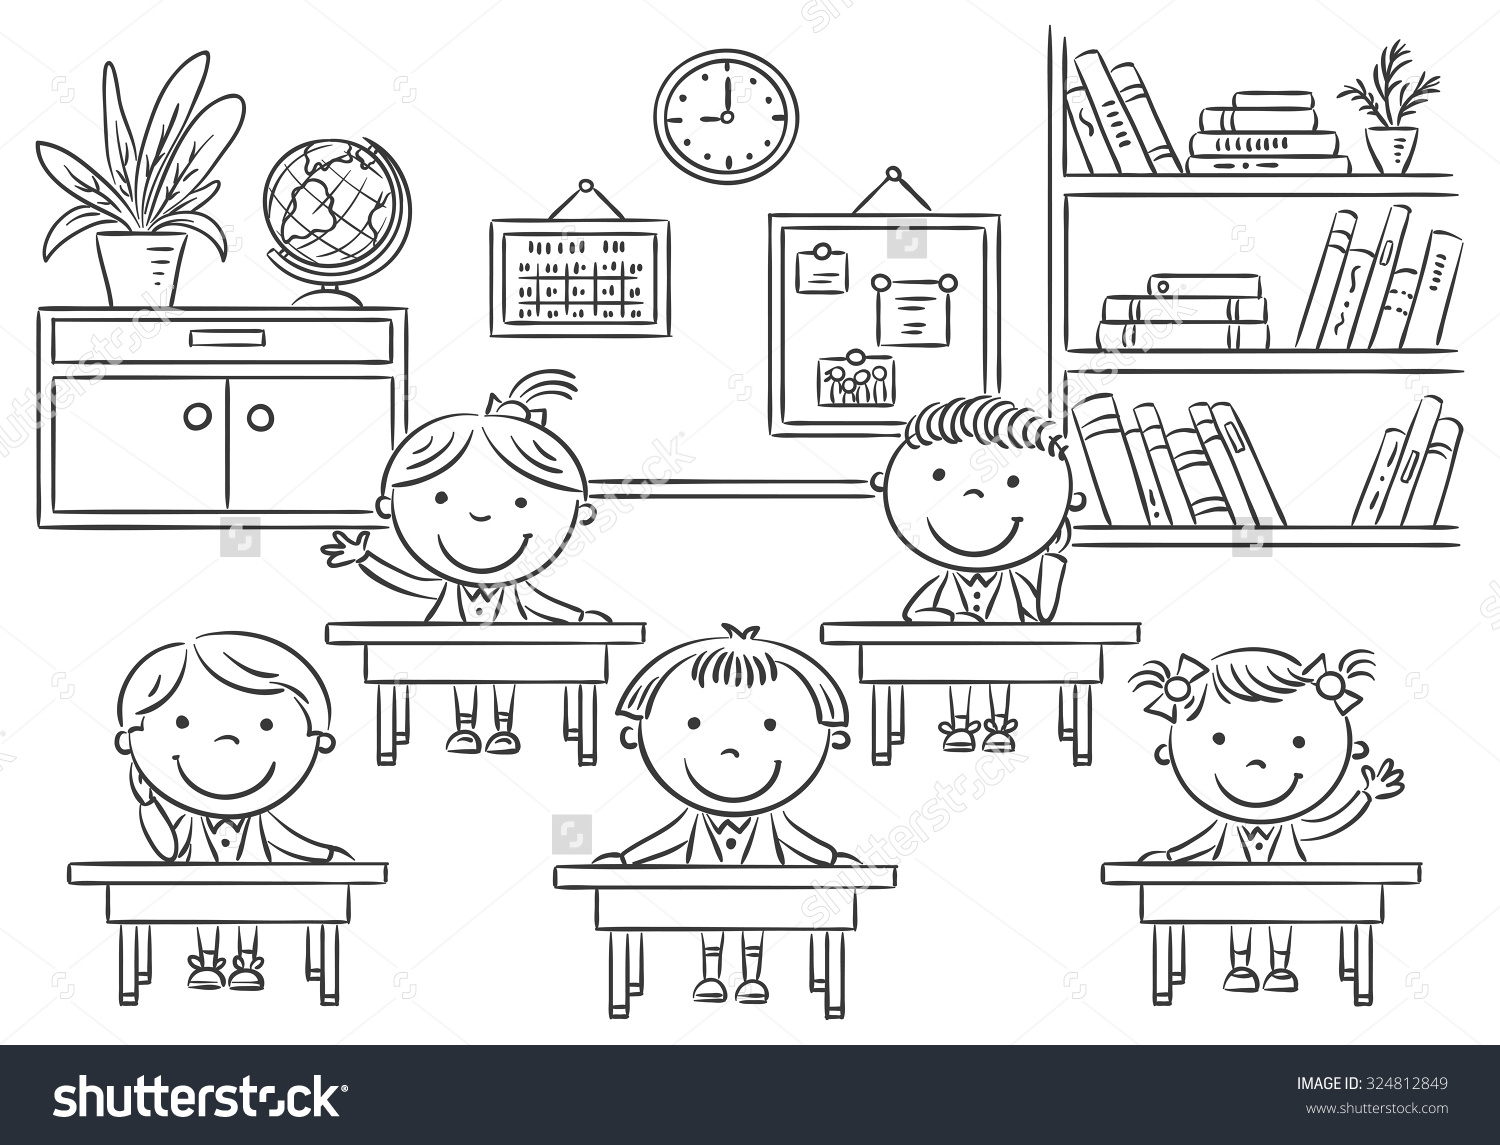 kindergarten classroom clipart black and white 8 » clipart station